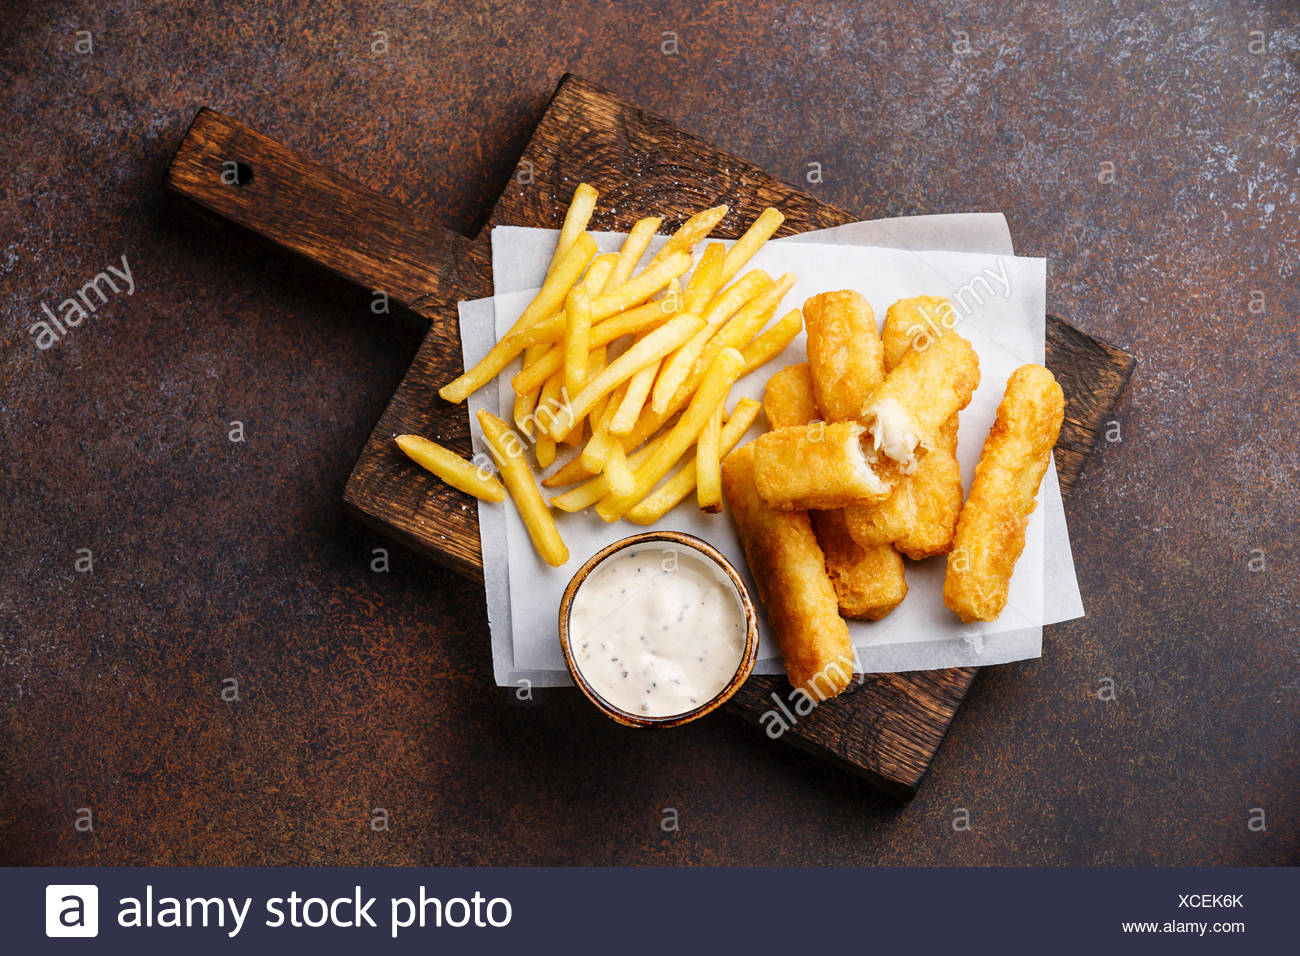 Fish fingers and Chips british fast food with tartar sauce on dark background - Stock Image